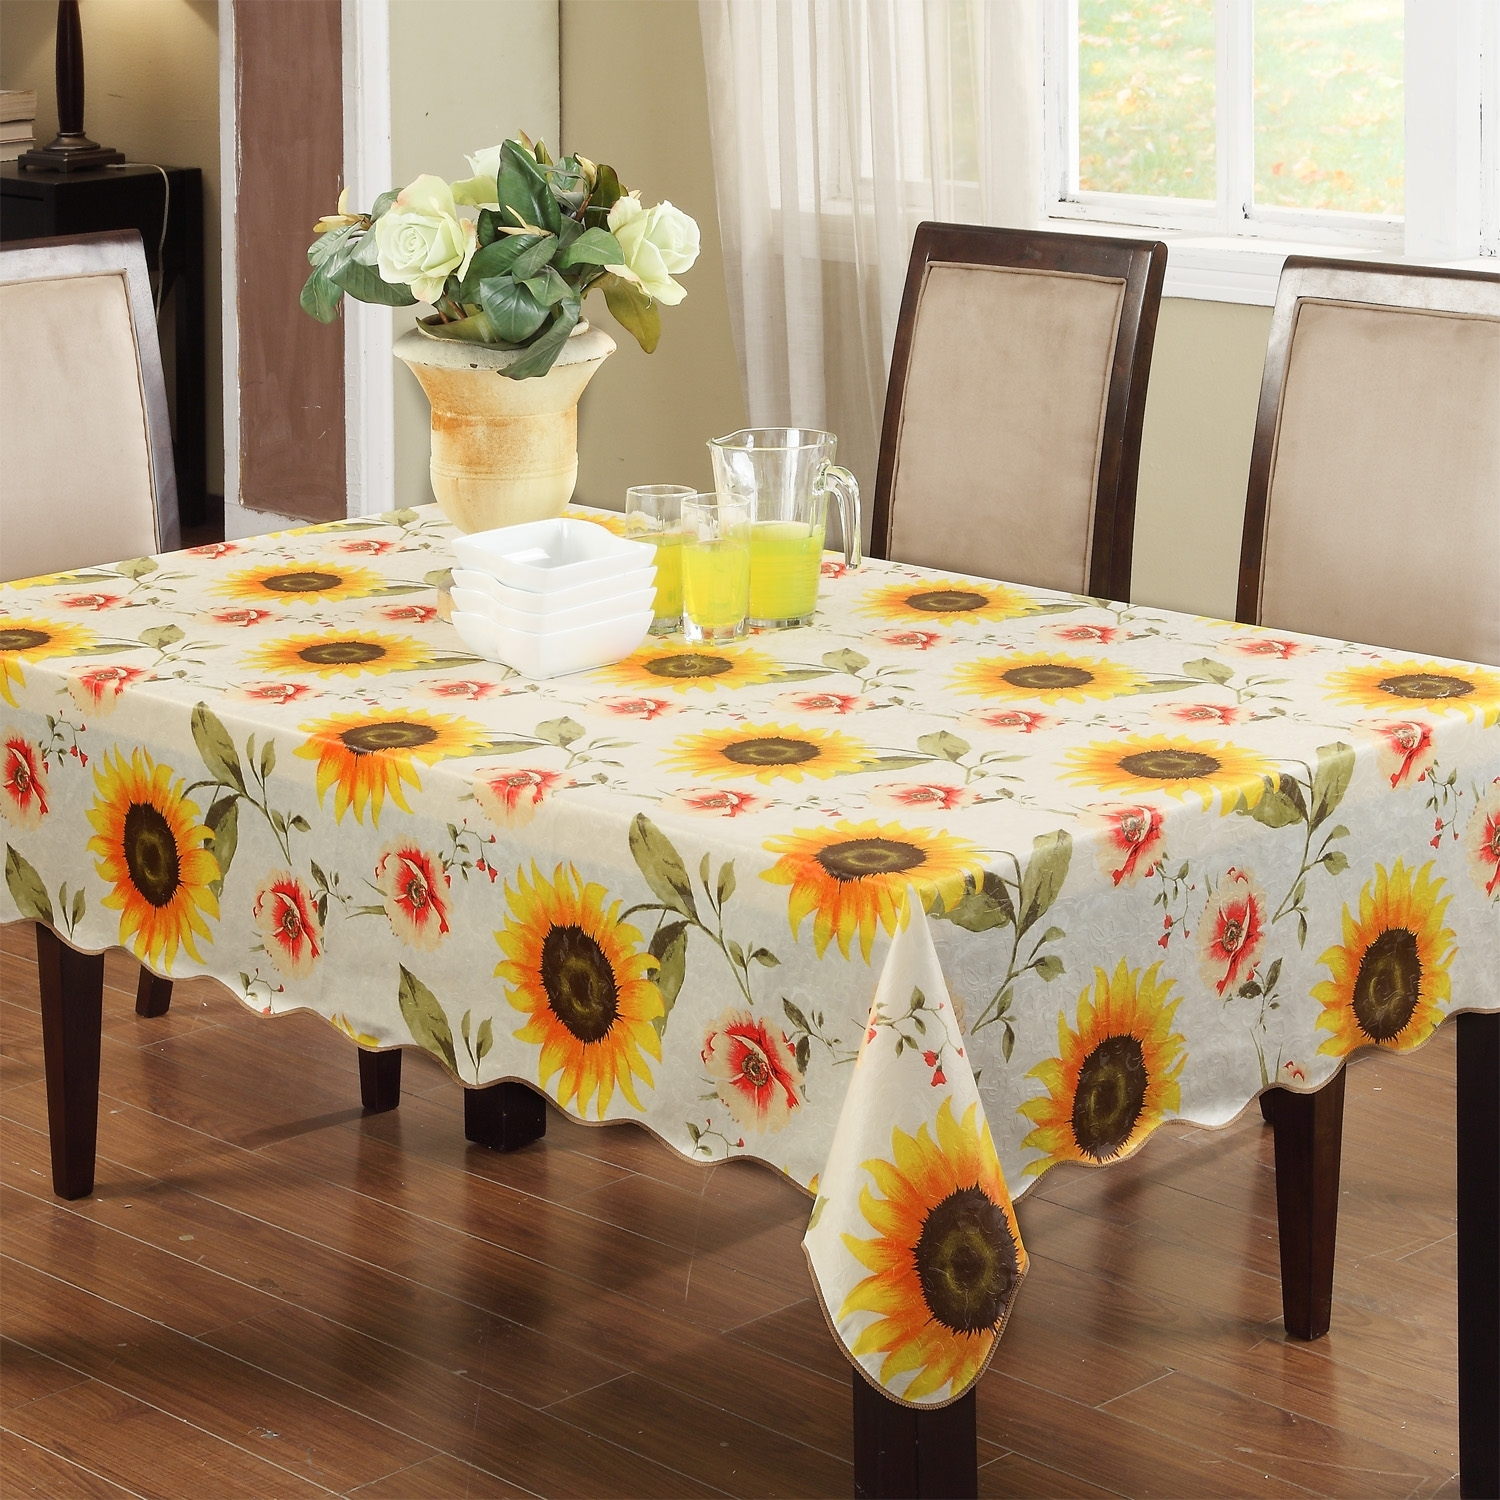 Slate Carnation Home Fashions 60 Inch Round Vinyl Fitted Flannel Backed Tablecloth 60